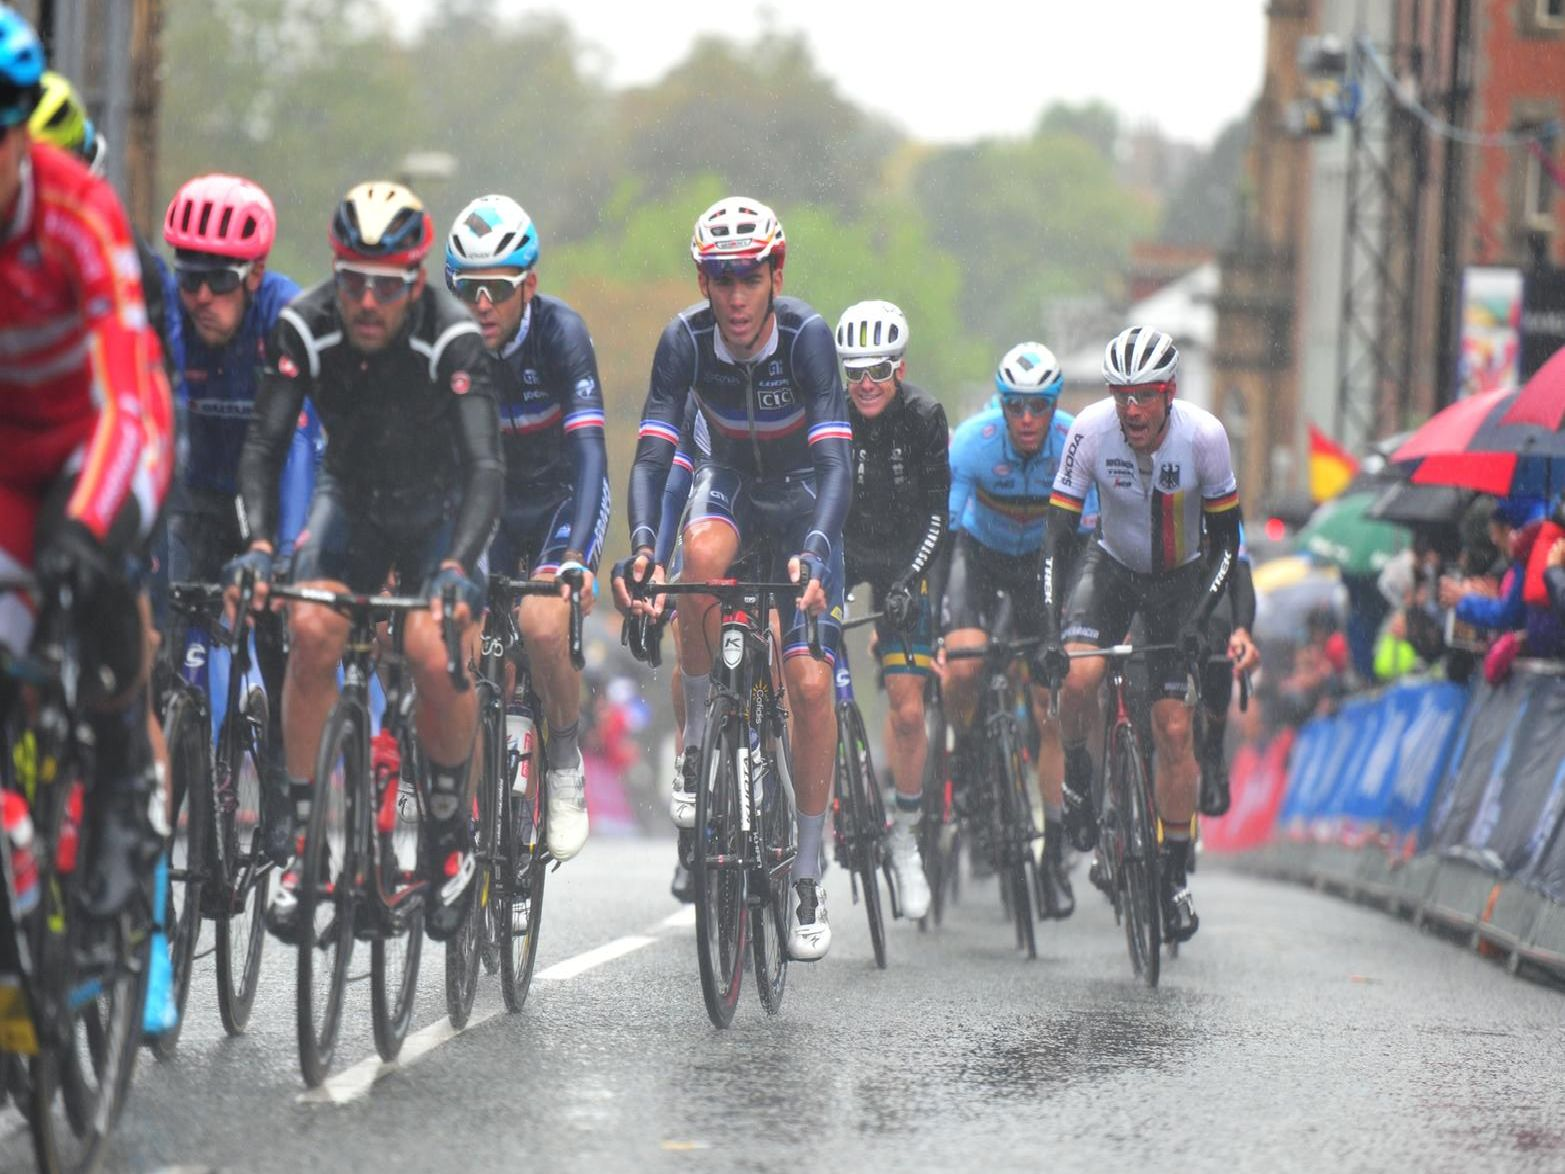 Wet and weary riders make their way up Parliament Street.